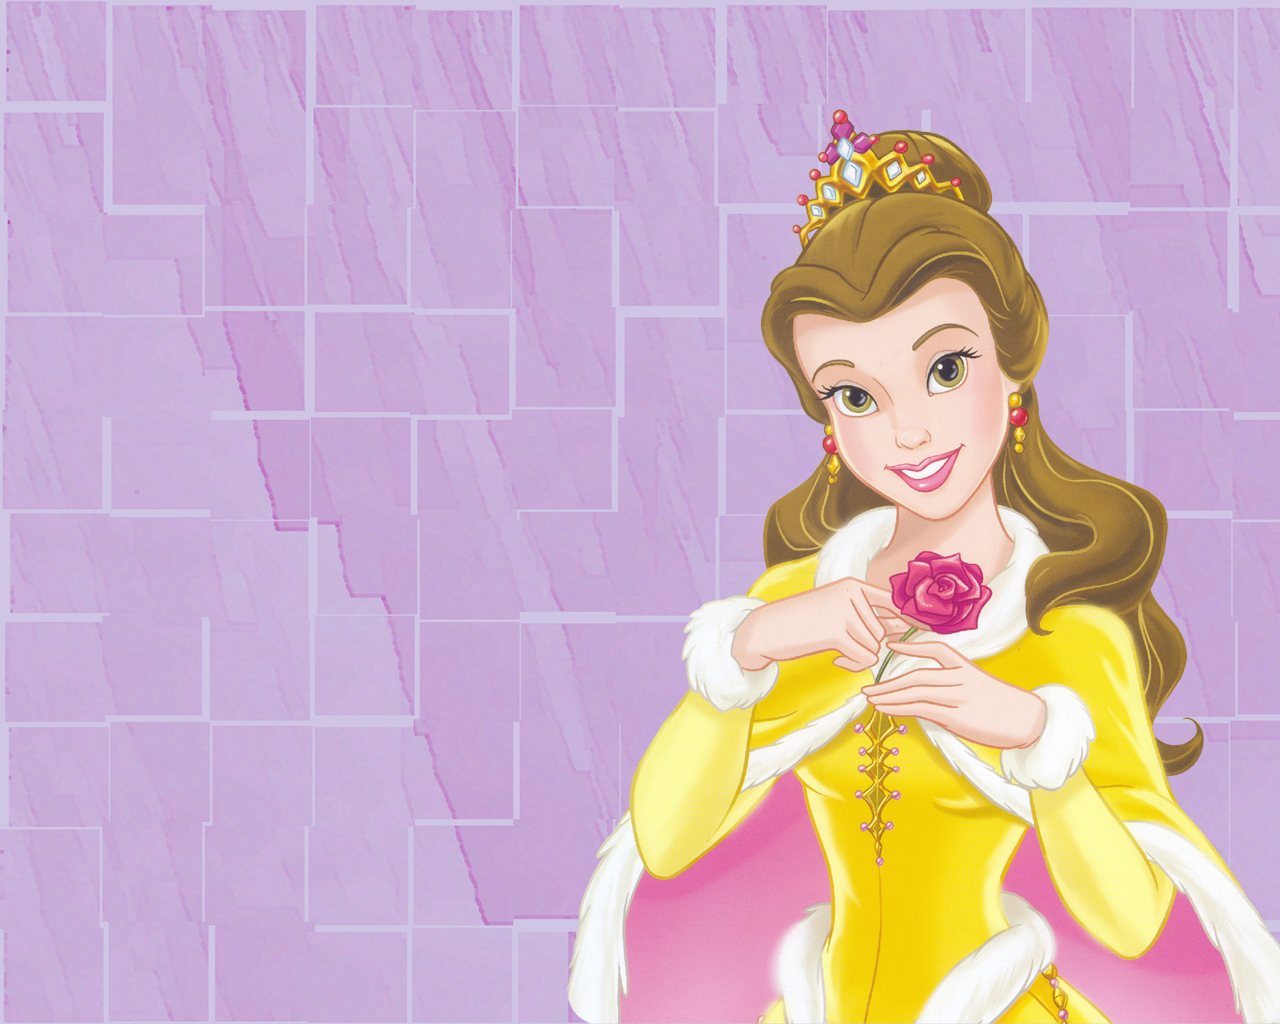 Disney Princesses Valentine Card Happy Love Valentine Princess Card 1280x1024